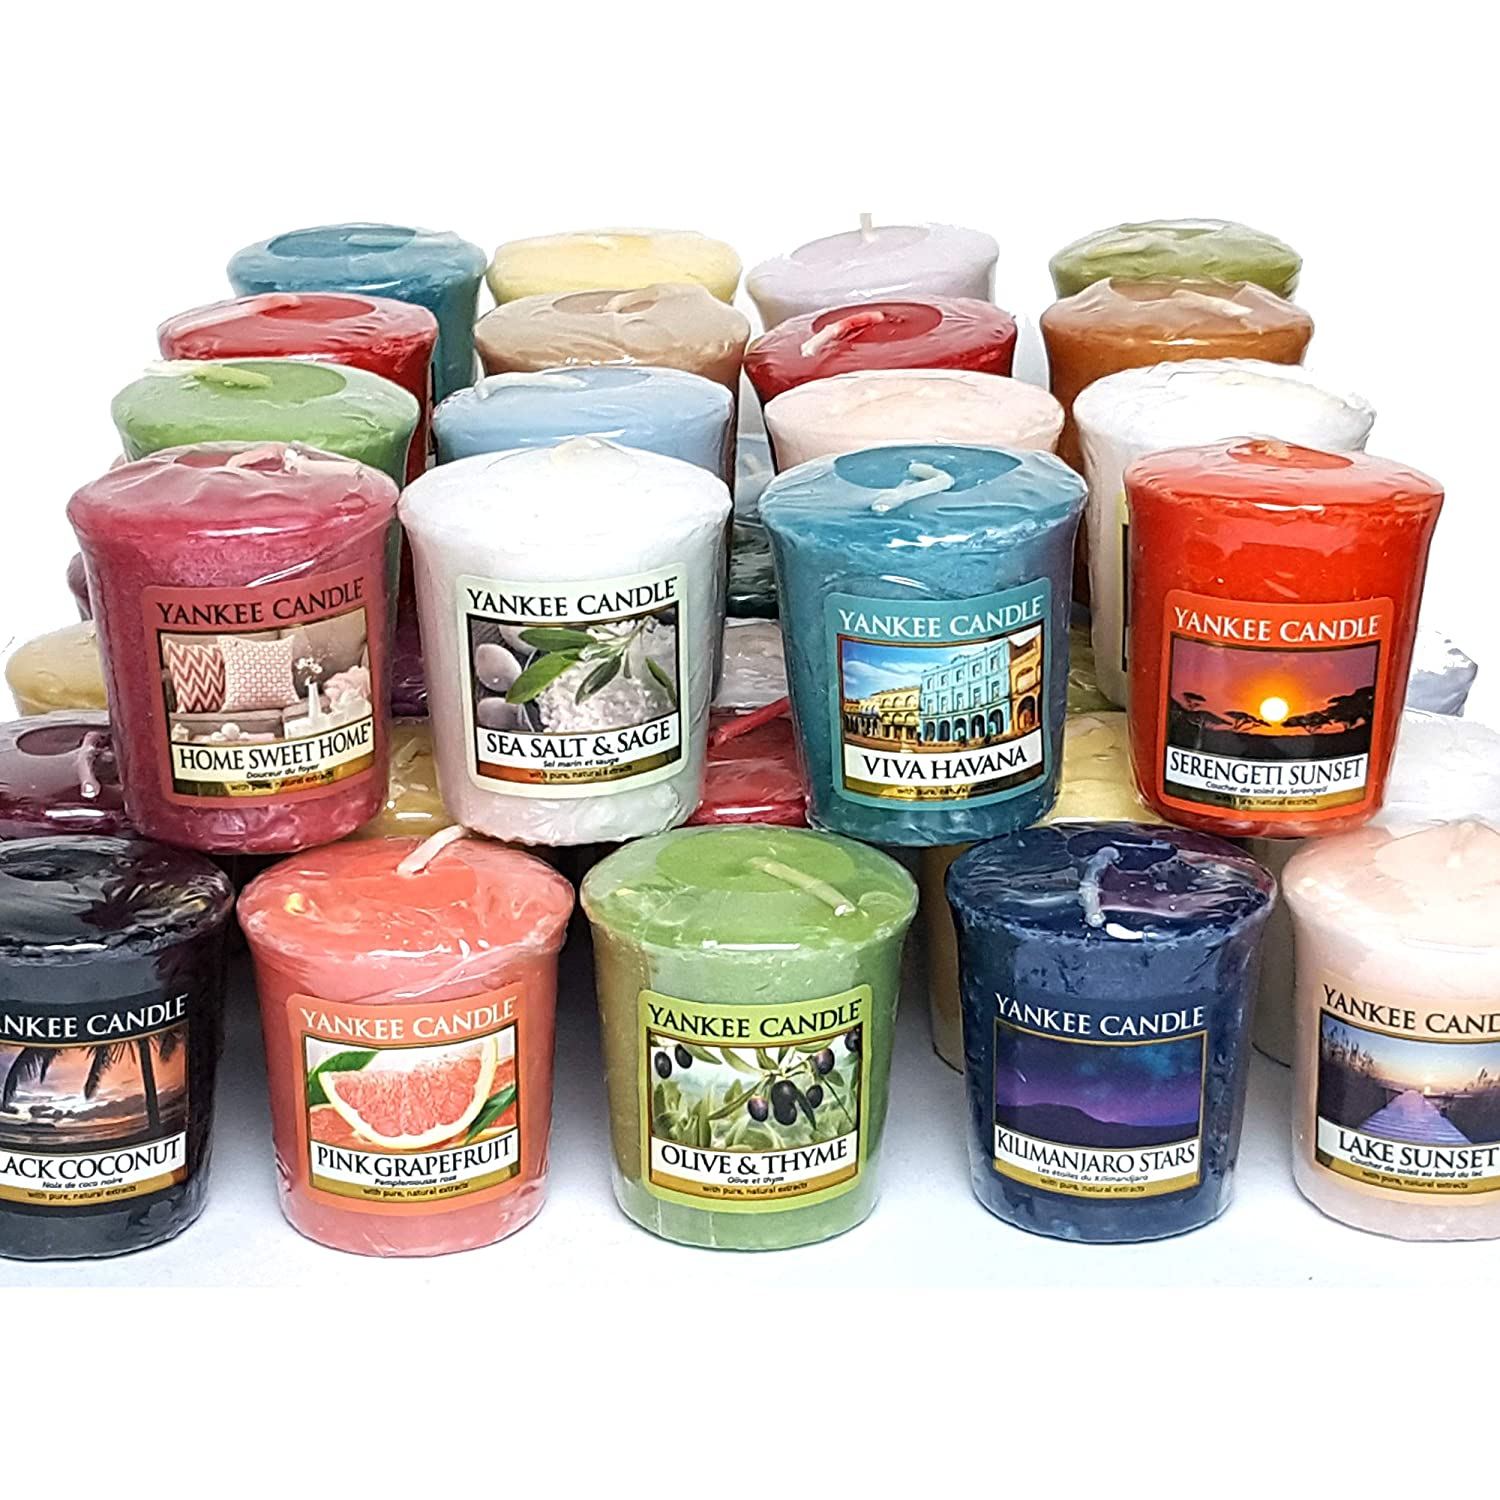 40 x Official Yankee Candle Votive Samplers Assorted Fragrances From The Entire Classic Range My Planet Yankee Candle MPYC-001